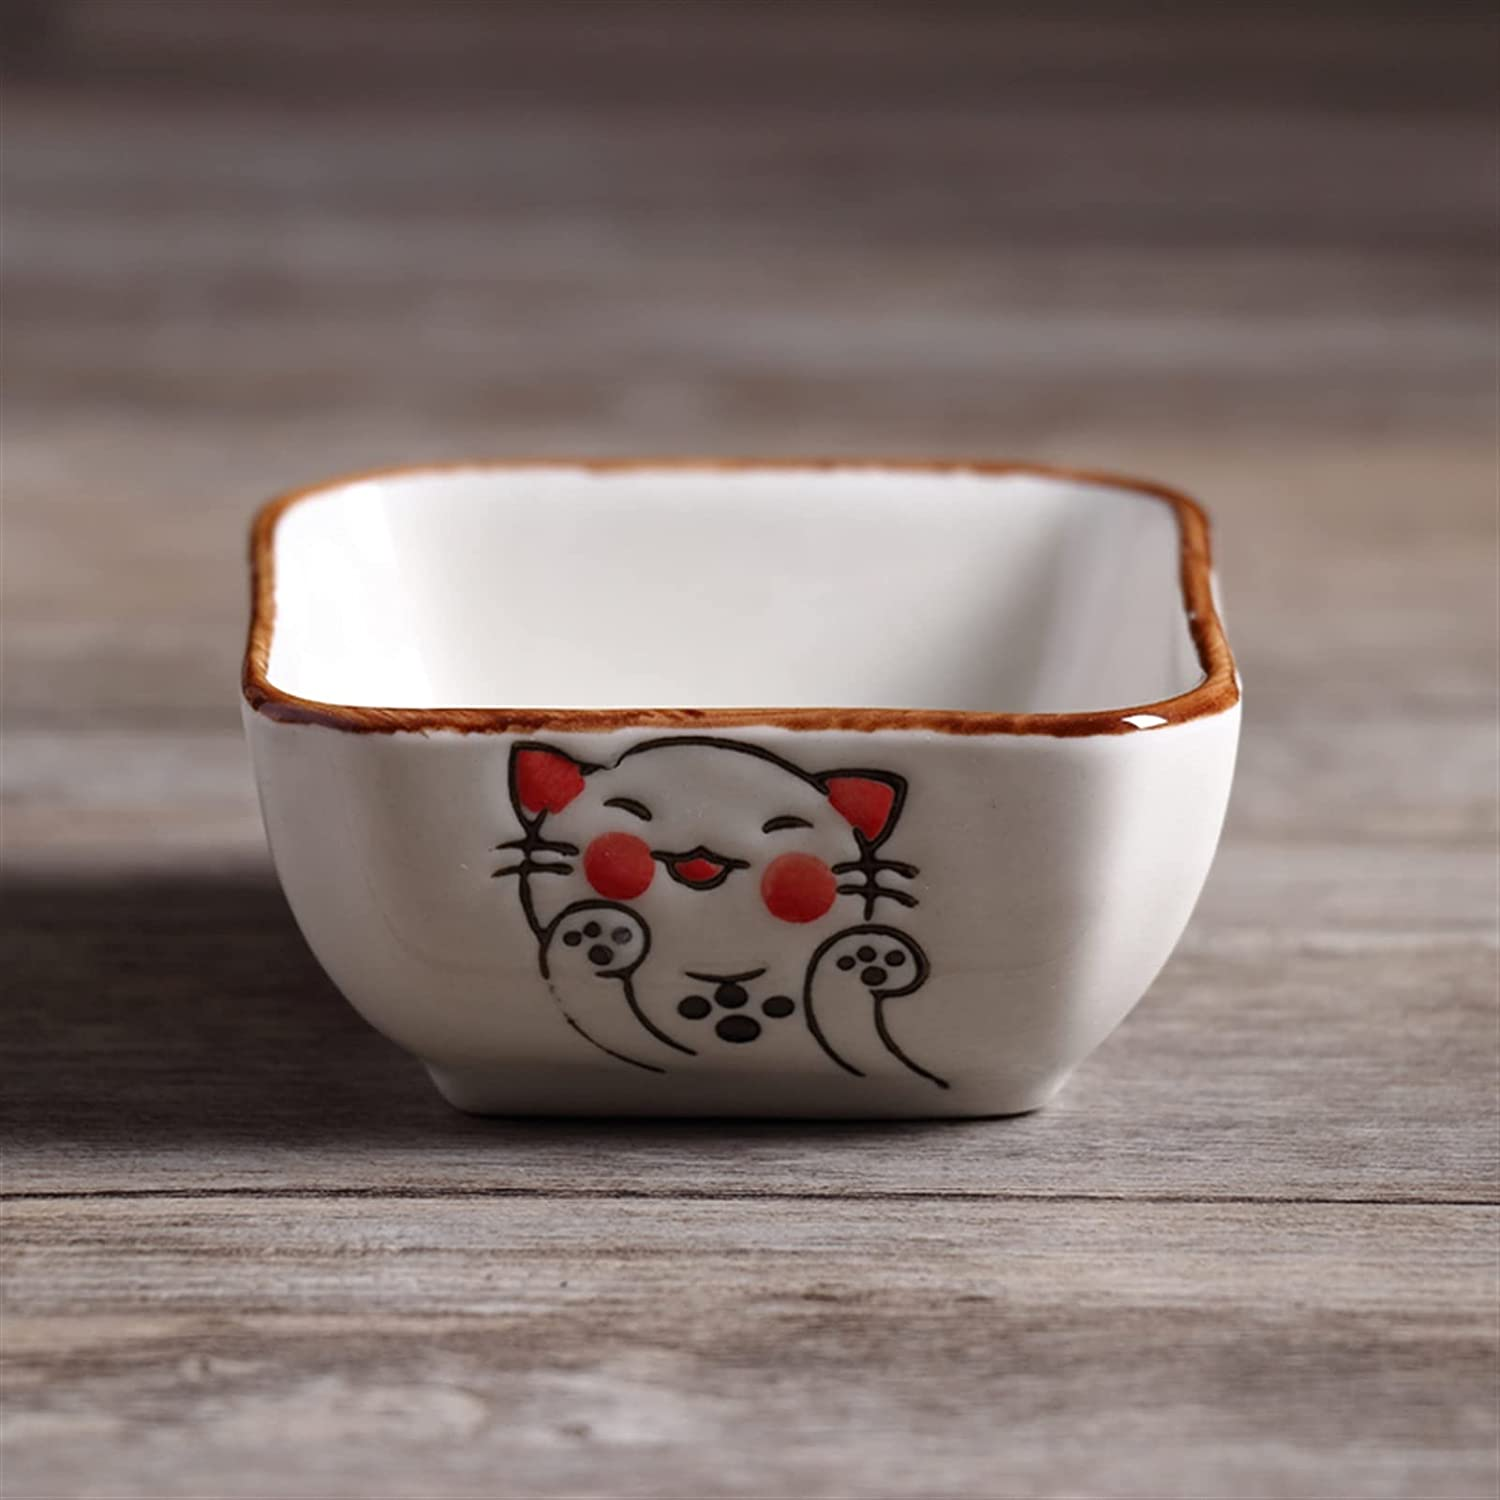 appetizer plates Japanese Glaze Under Cera Tableware Max 43% OFF Max 61% OFF Plate Color